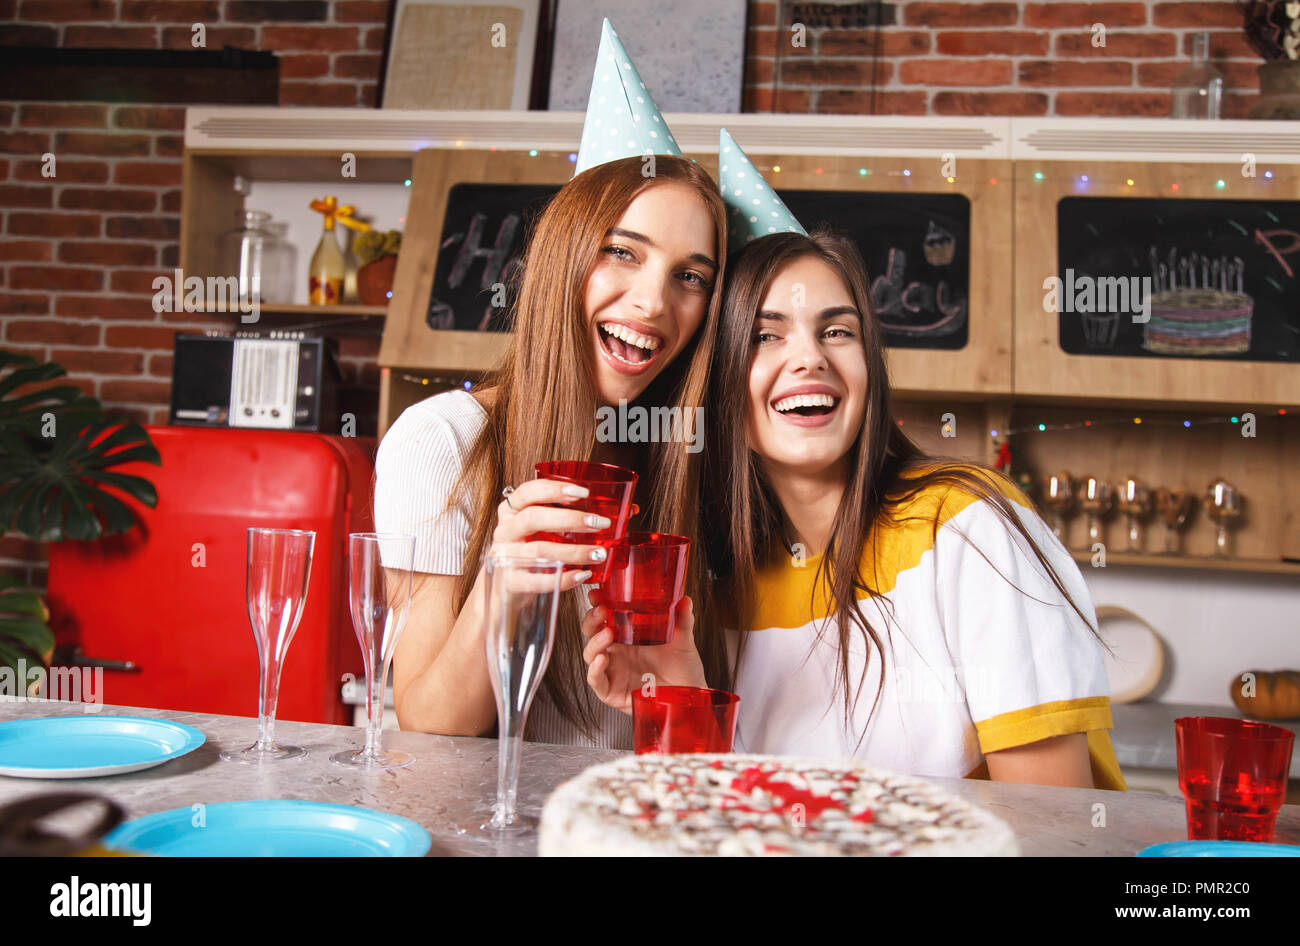 Brunette girlfriends in the party hats holding drinks and celebrating birthday - Stock Image